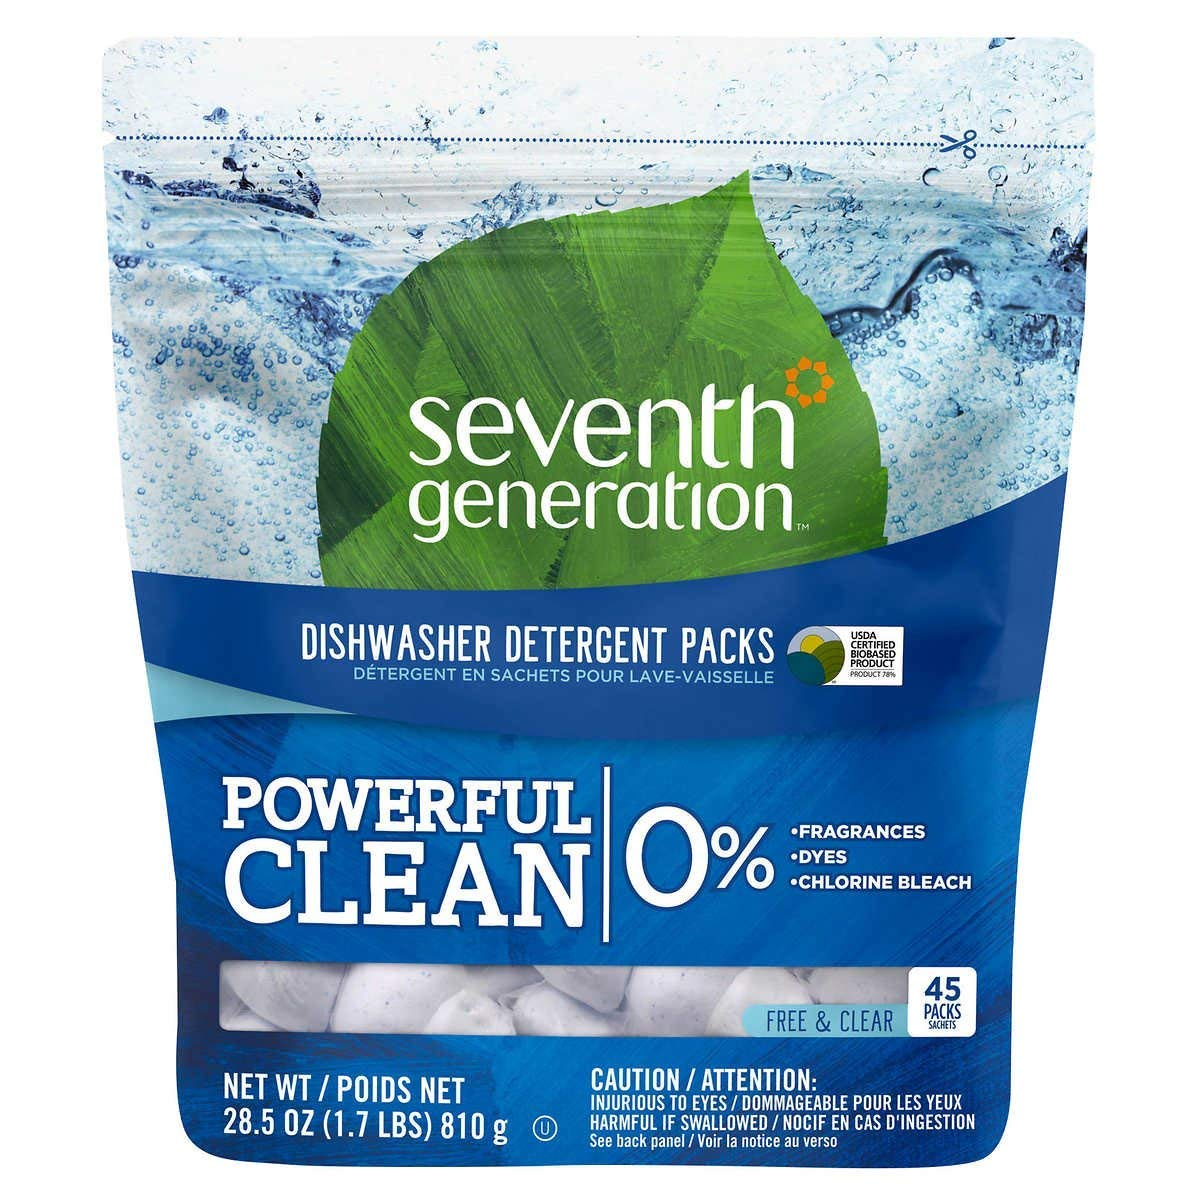 Seventh Generation Auto Dish Cleaner Packs Free and Clear